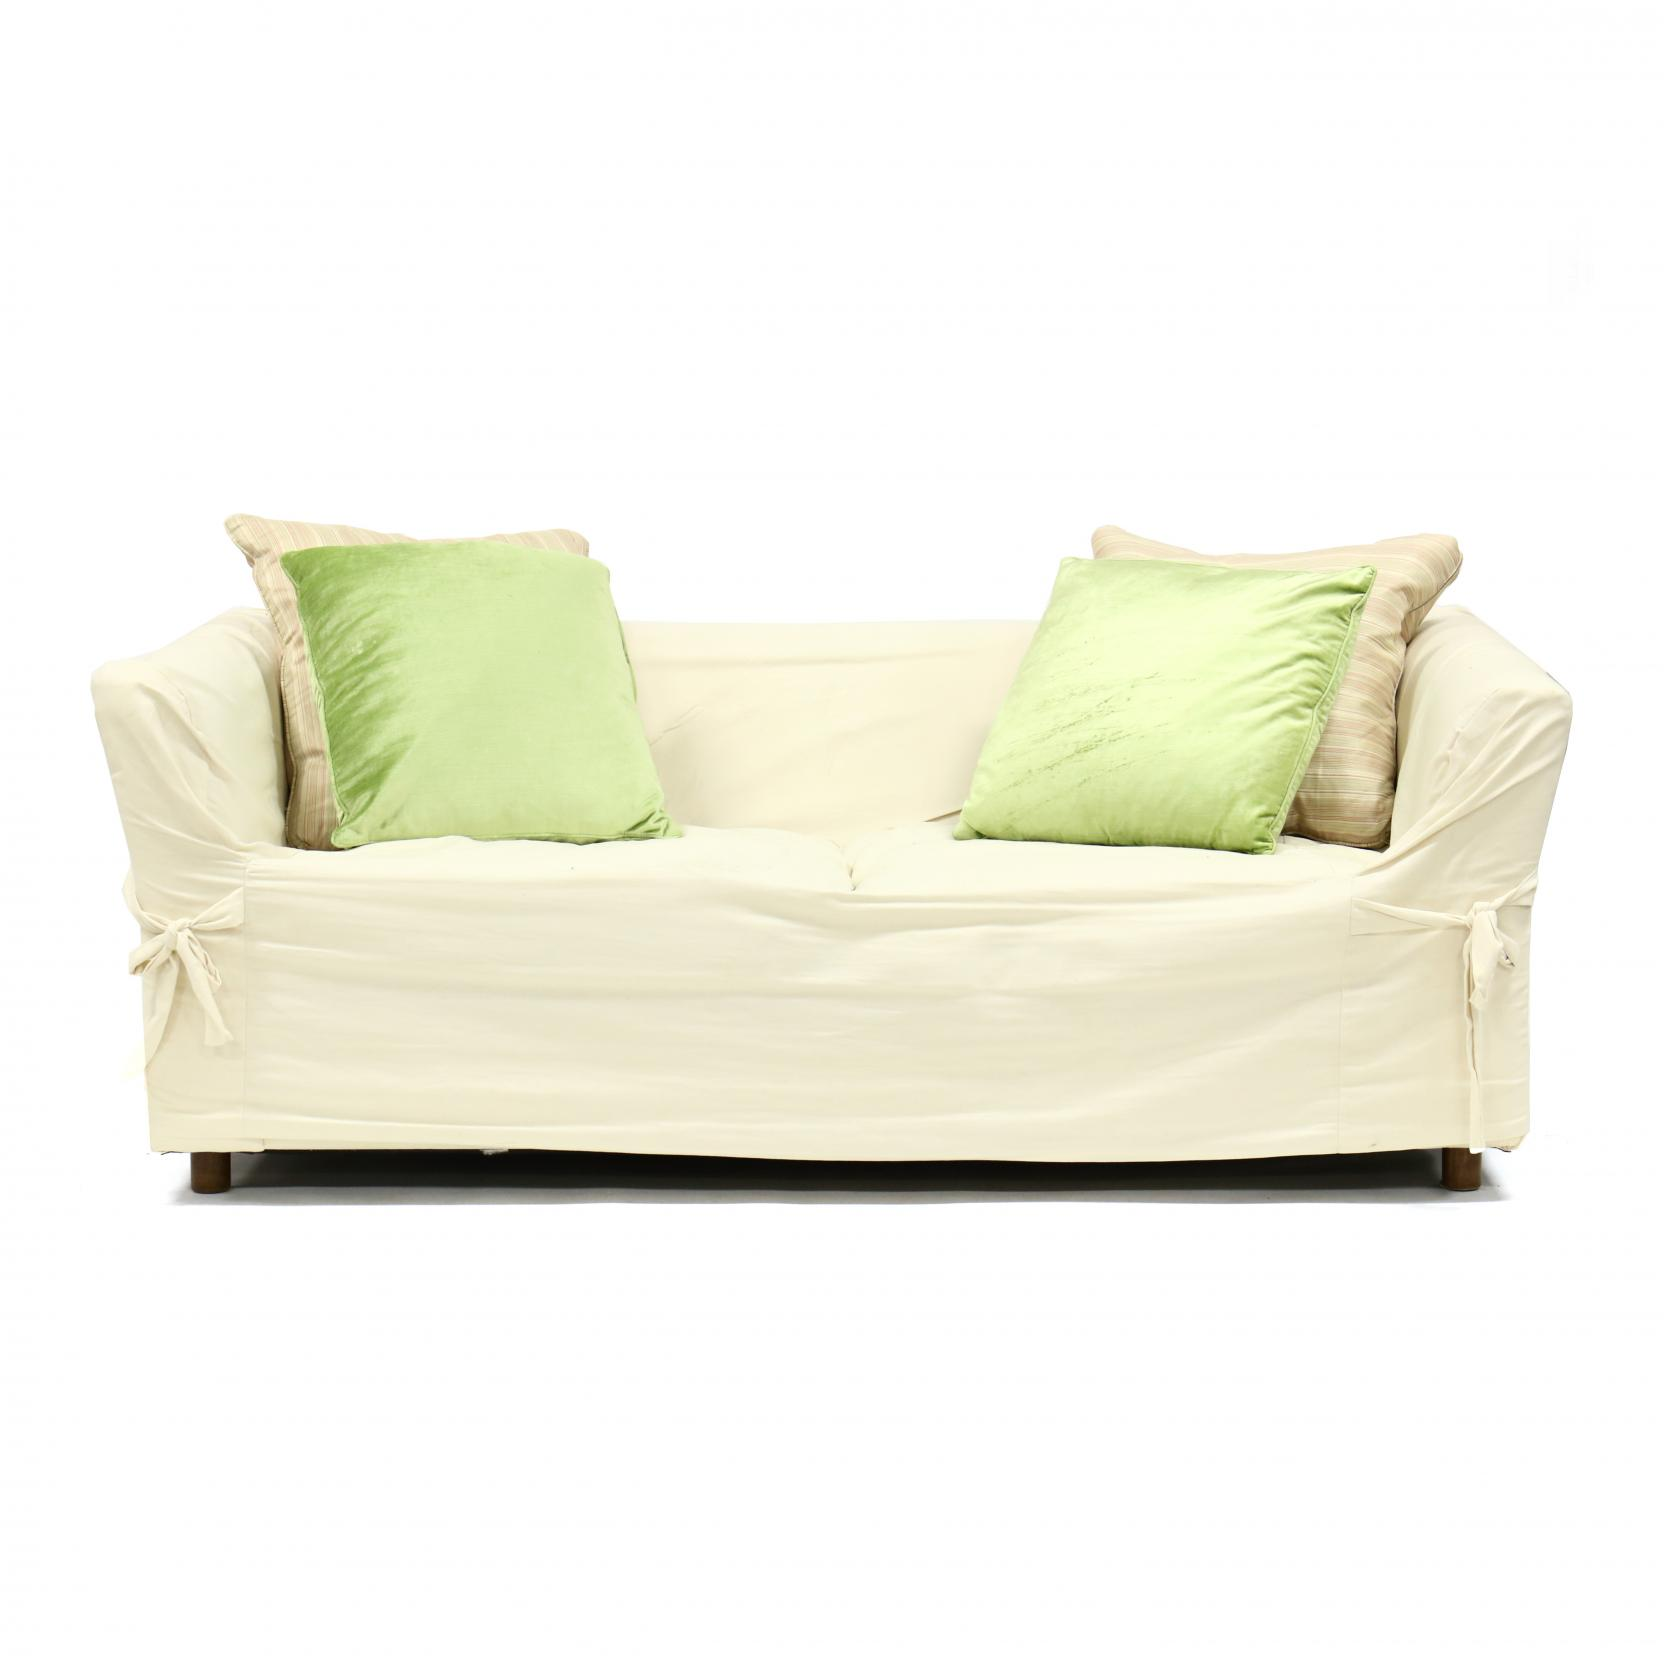 contemporary-slipcovered-loveseat